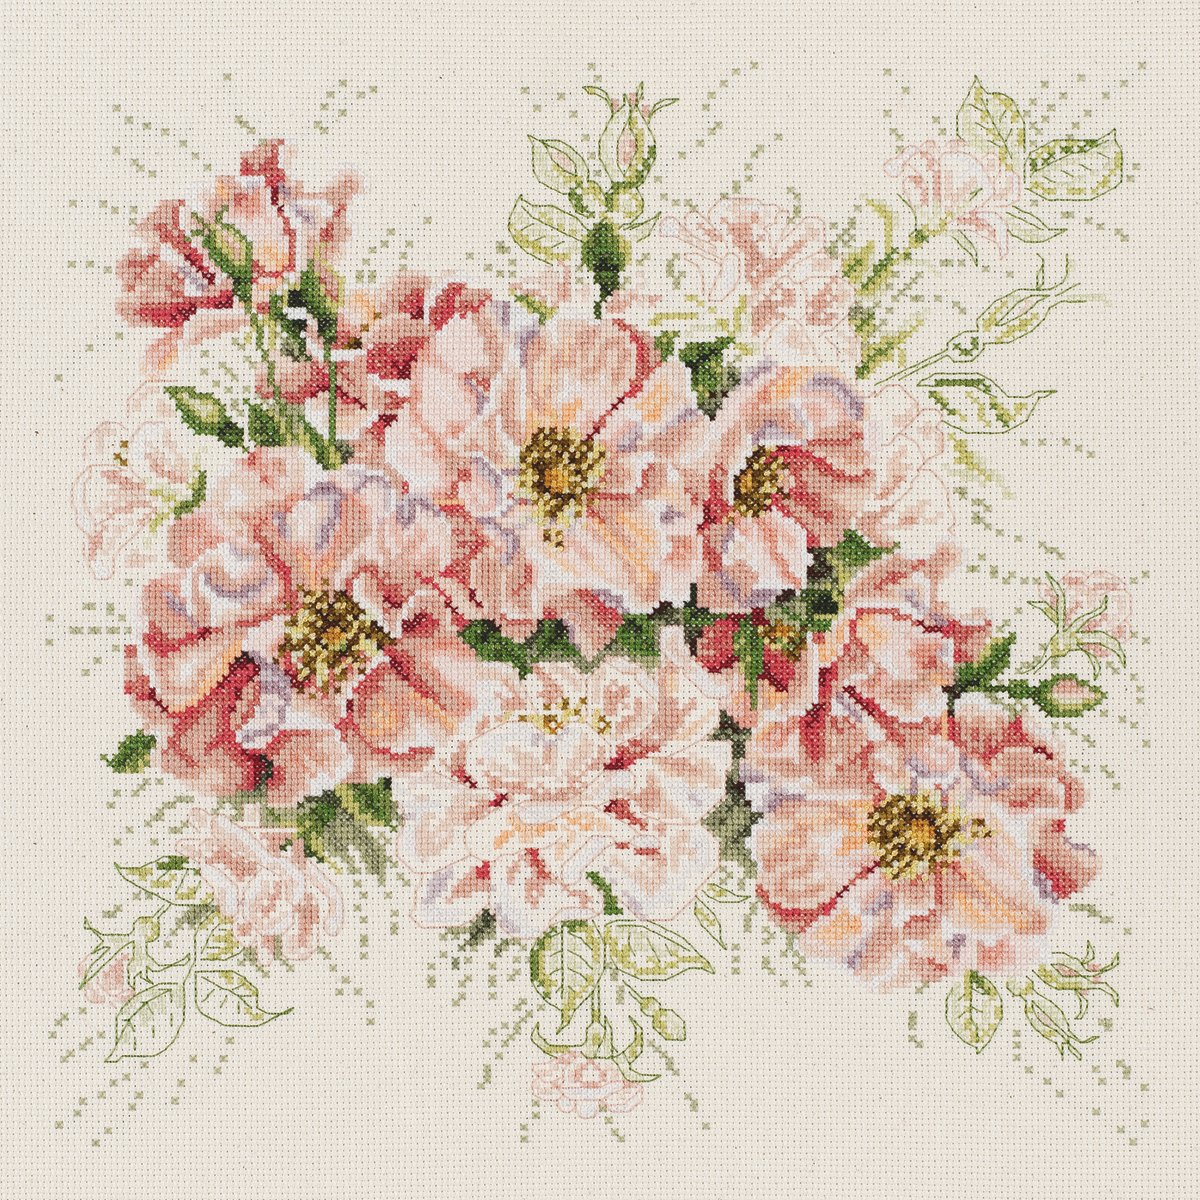 13 by 13-Inch Janlynn 106-0057 14 Count Garden Roses Counted Cross Stitch Kit